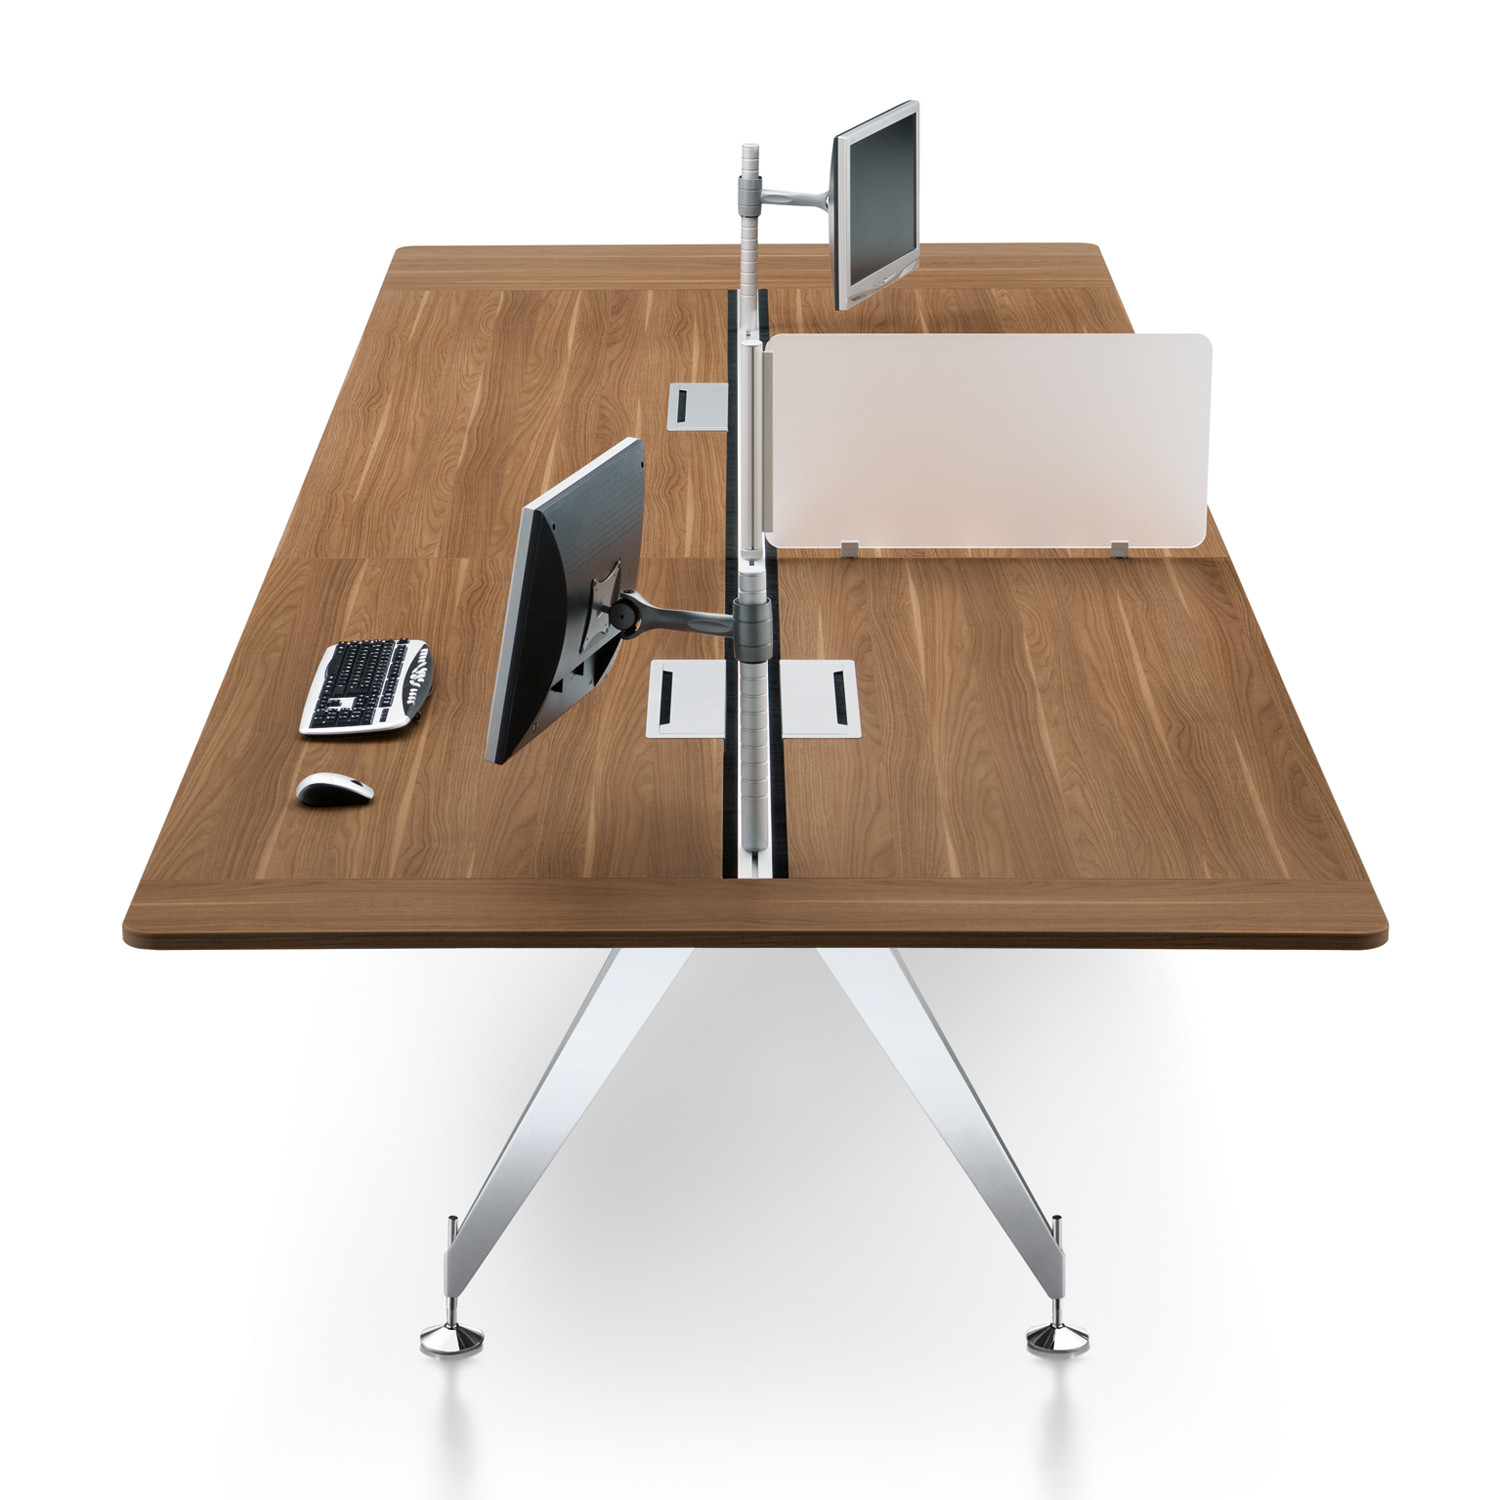 Invitation Desk Bench with screen divider